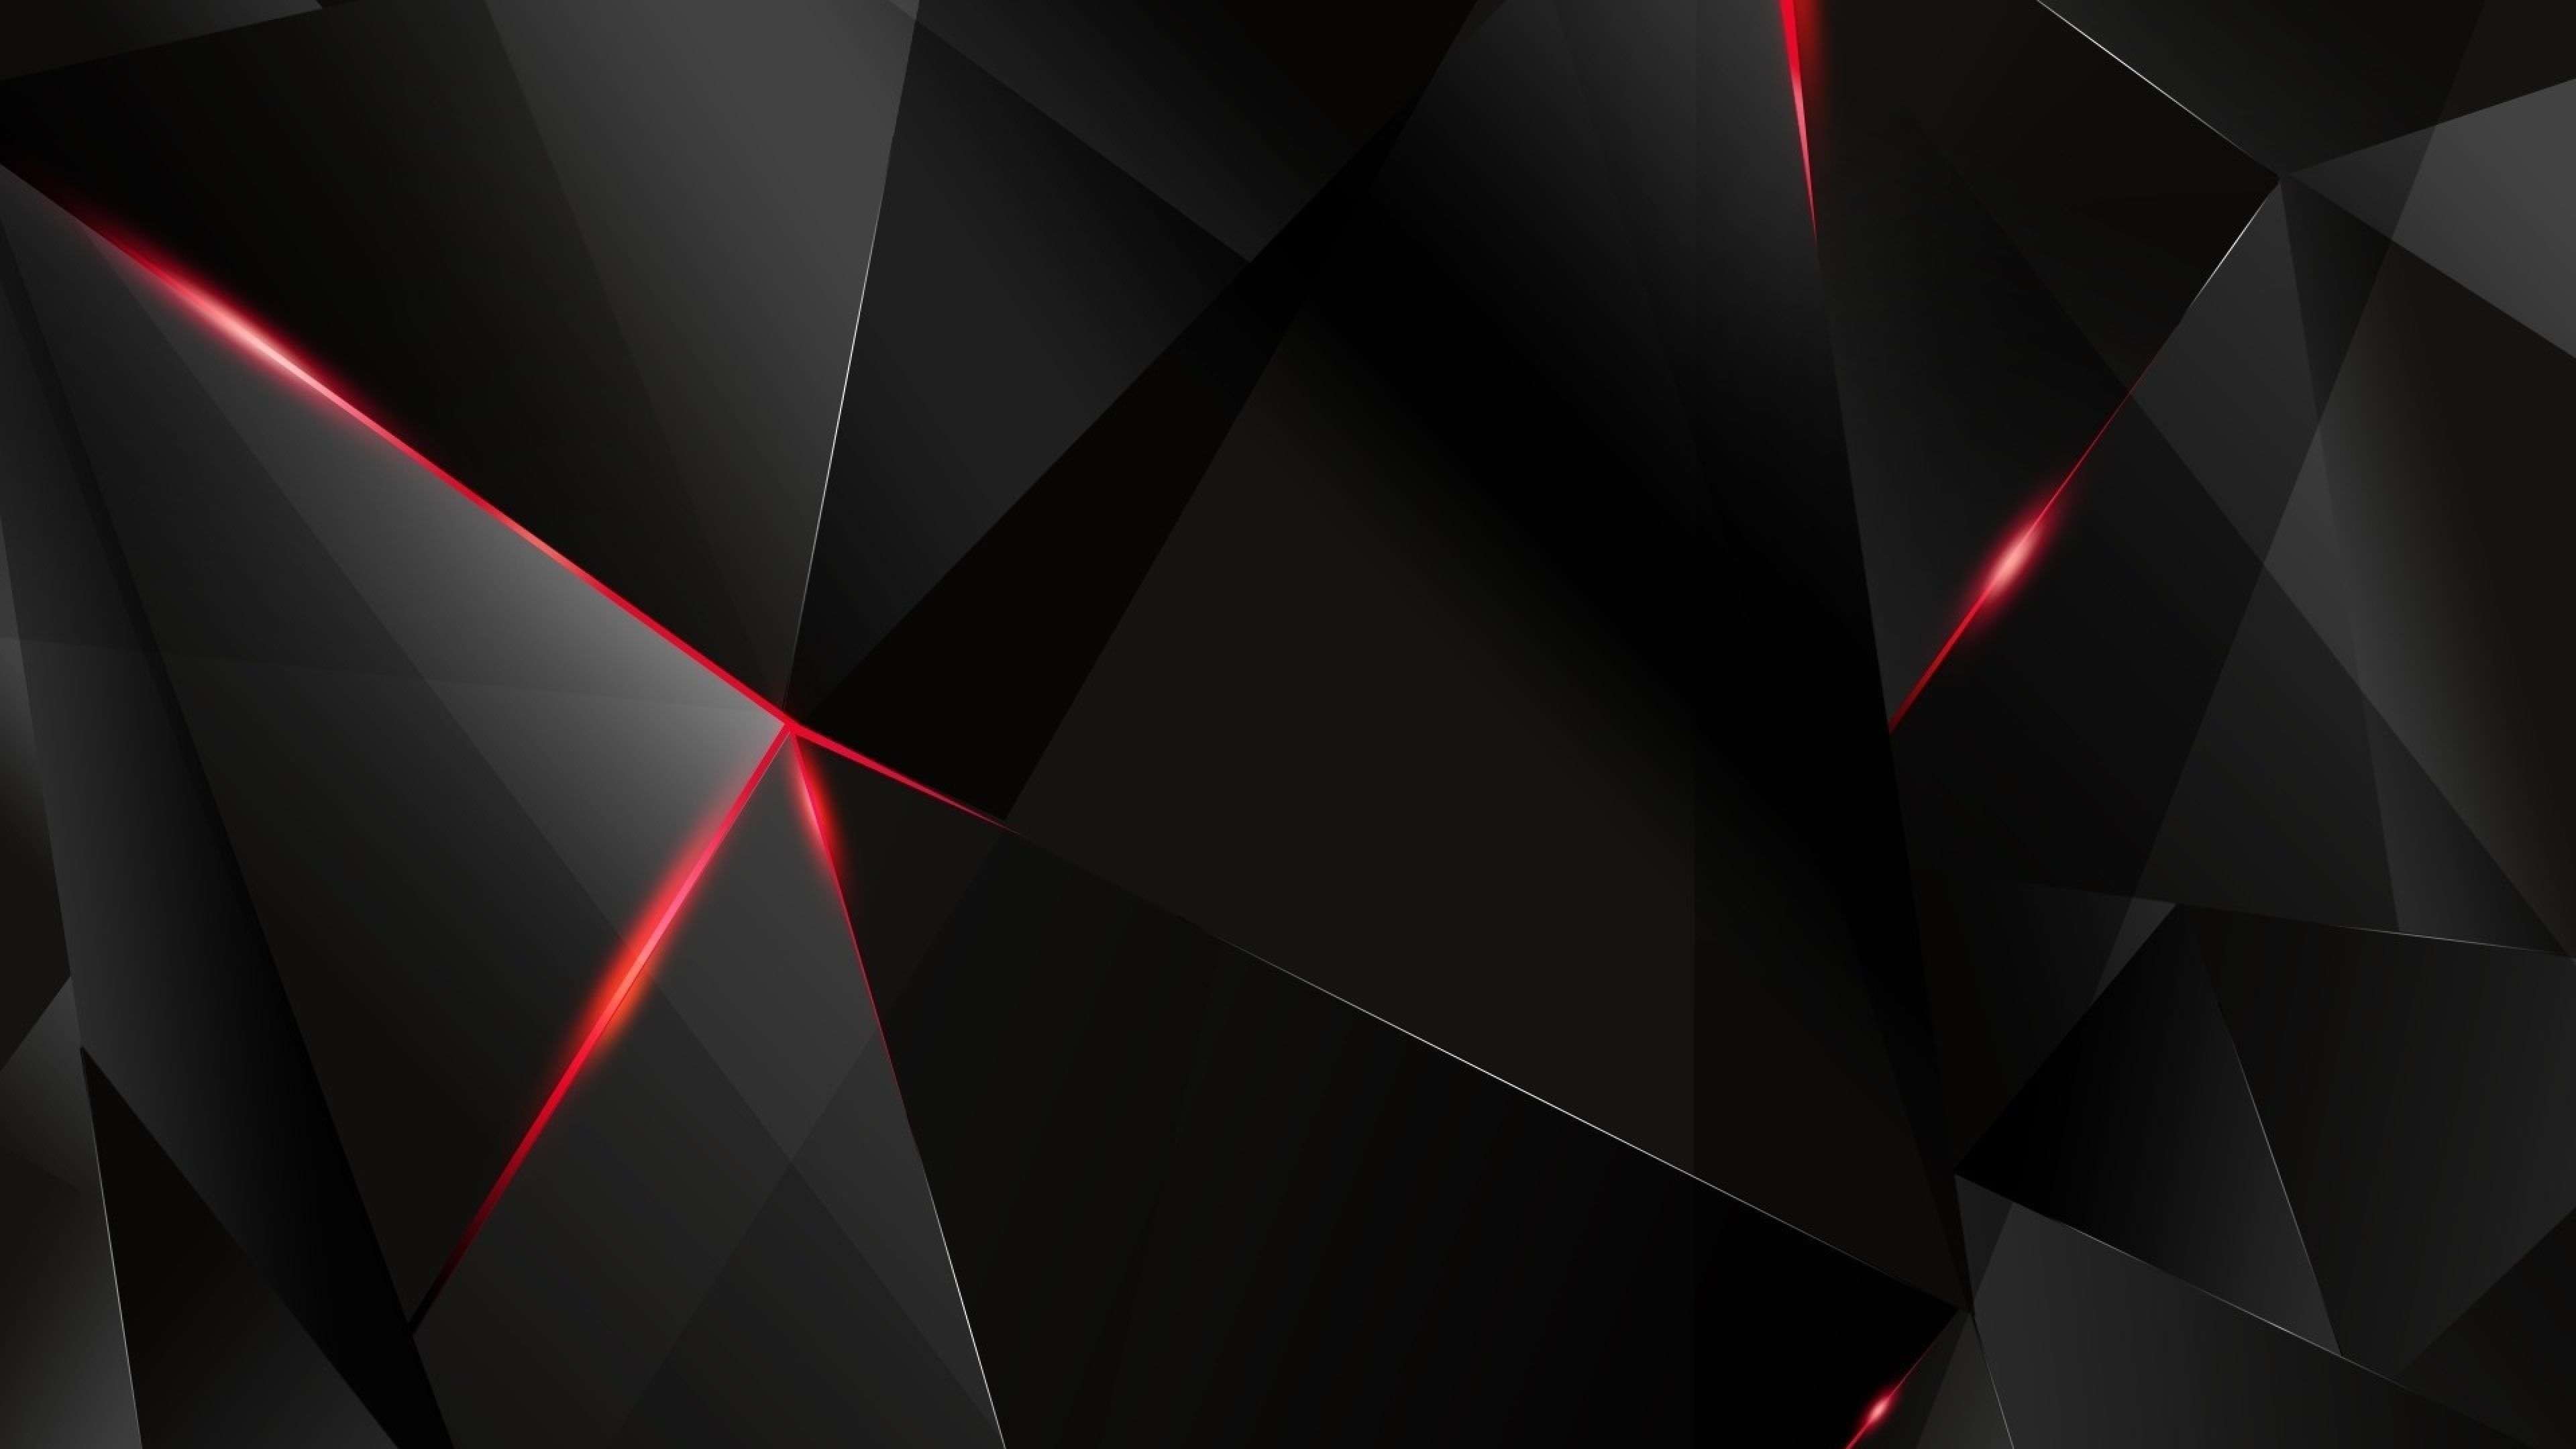 59 4k Dark Wallpapers On Wallpaperplay Red And Black Wallpaper Dark Black Wallpaper Dark Wallpaper